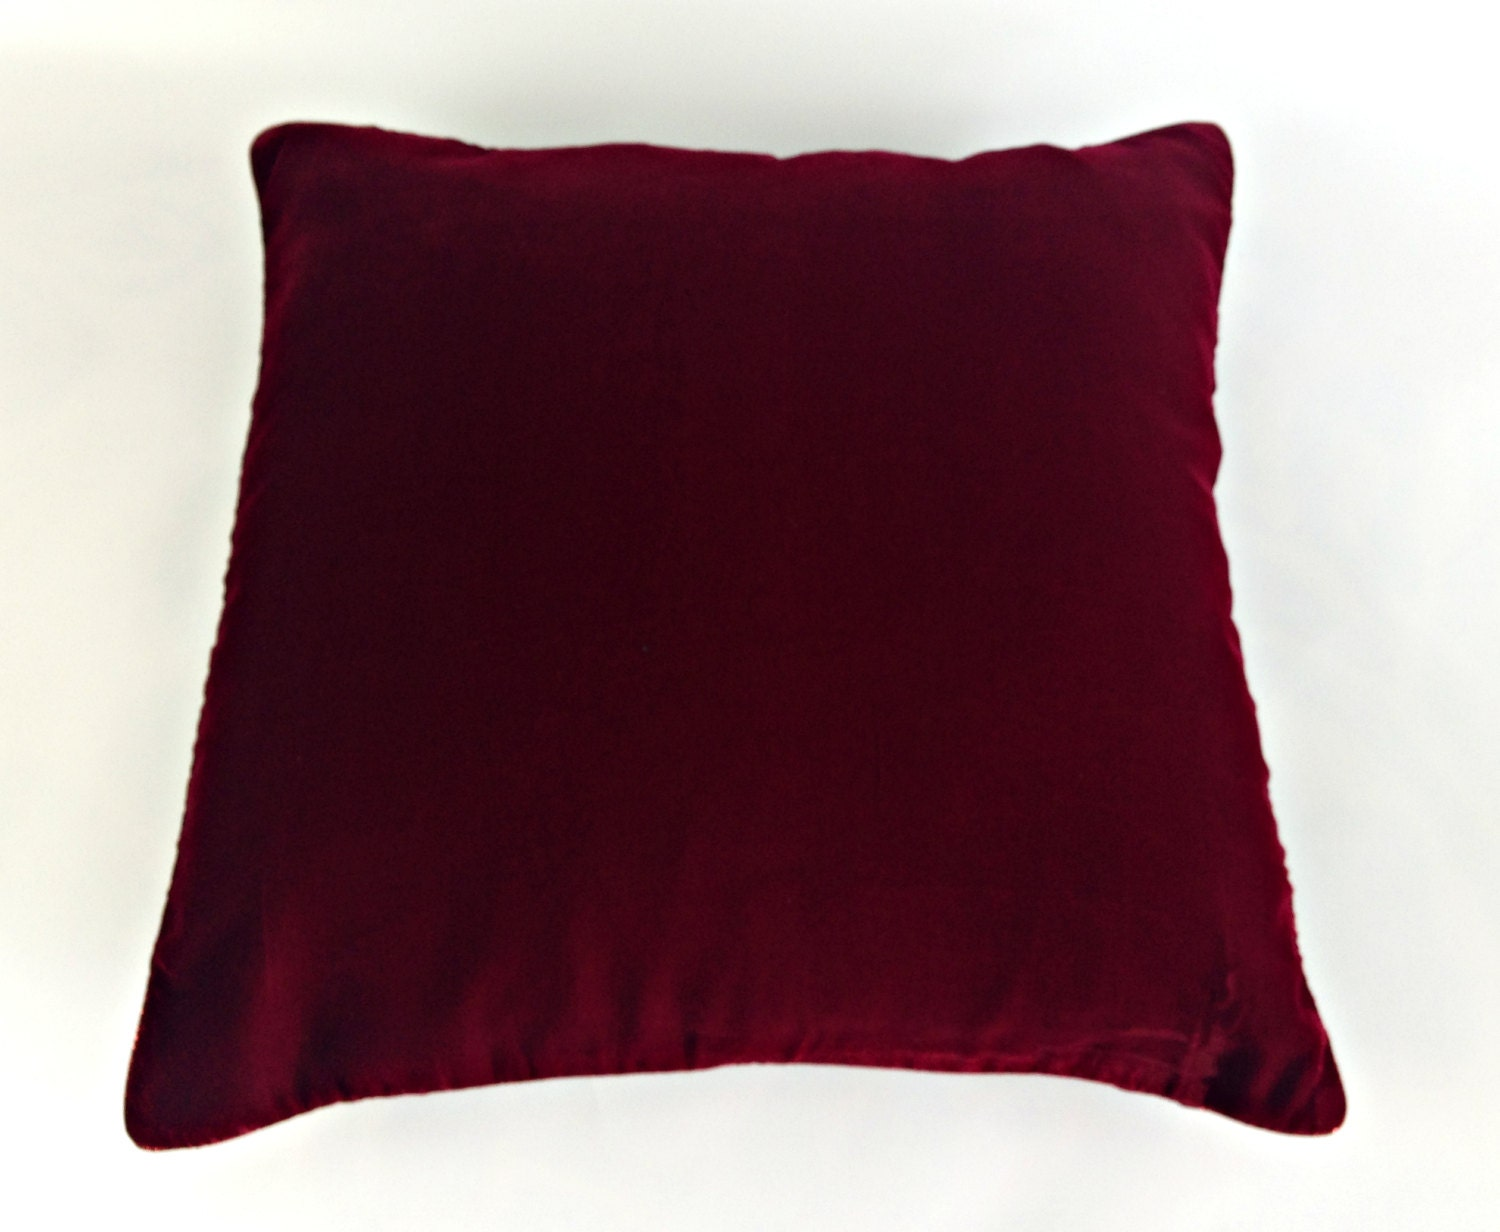 Throw Pillows For Maroon Couch : Velvet Pillow Burgundy pillow Plush Dorm Throw by FusionHomeStudio